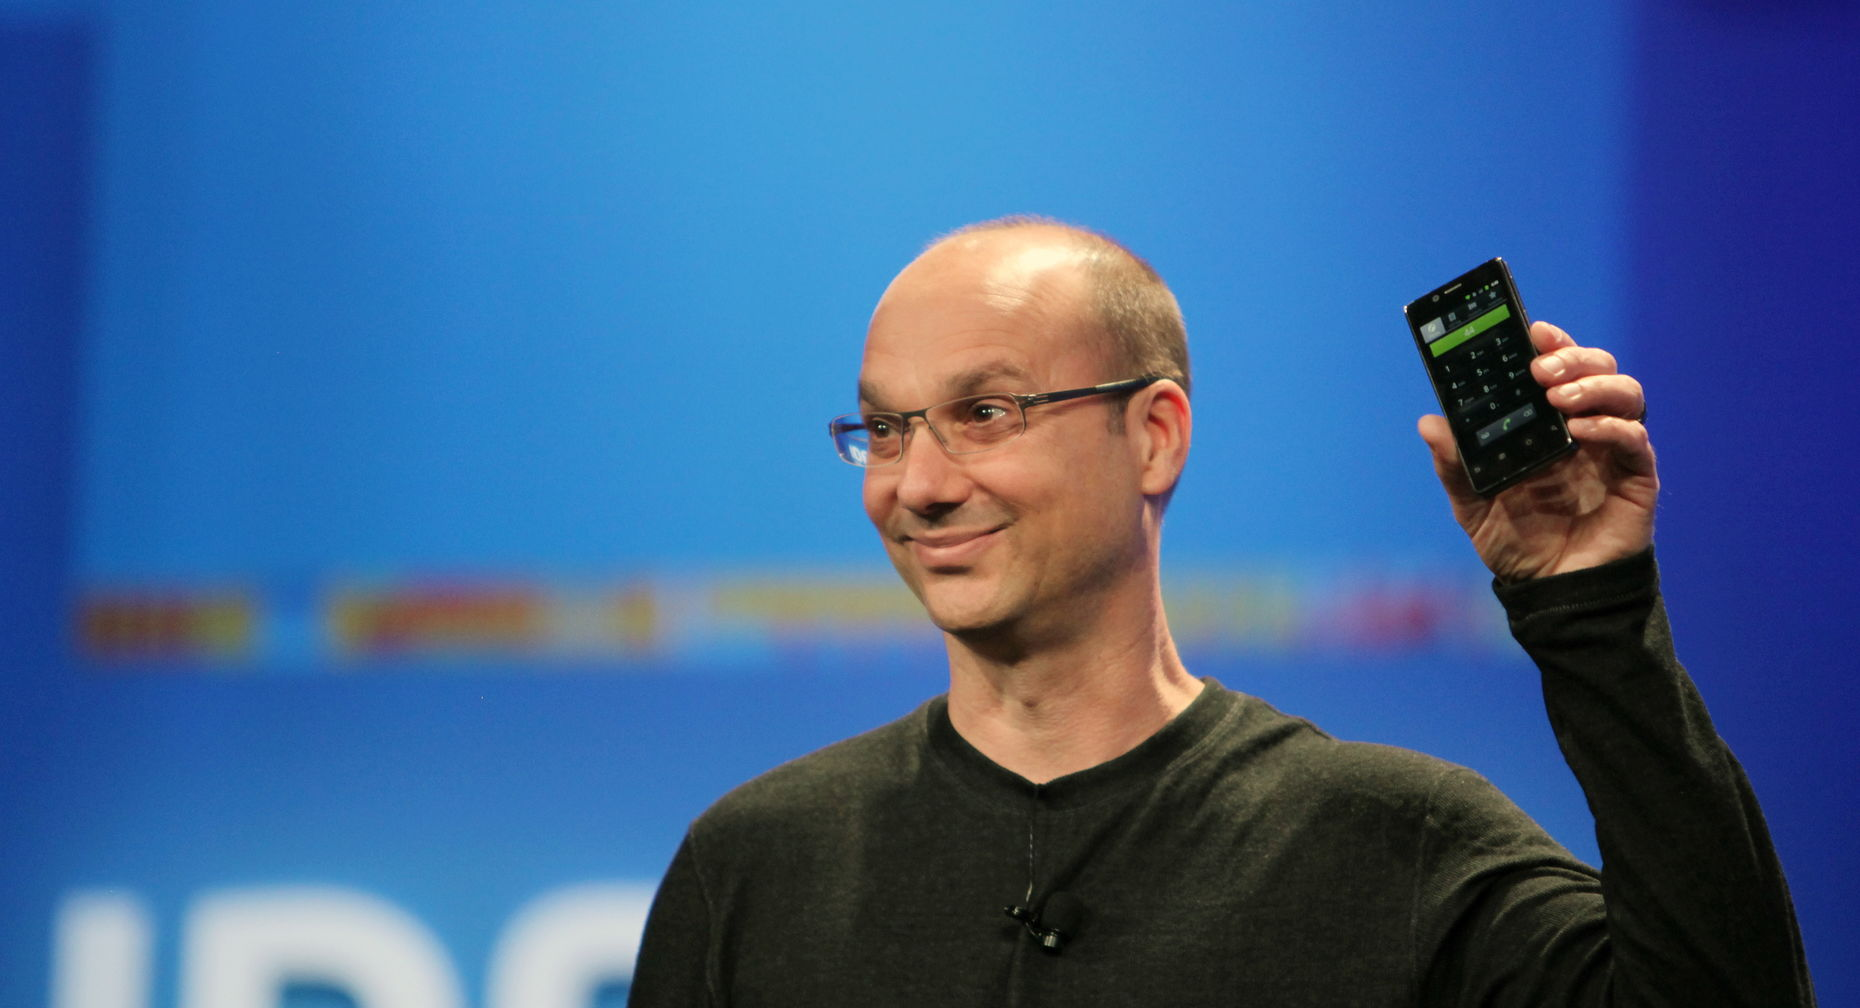 Google's Andy Rubin Pursues 'Replicant' Robots